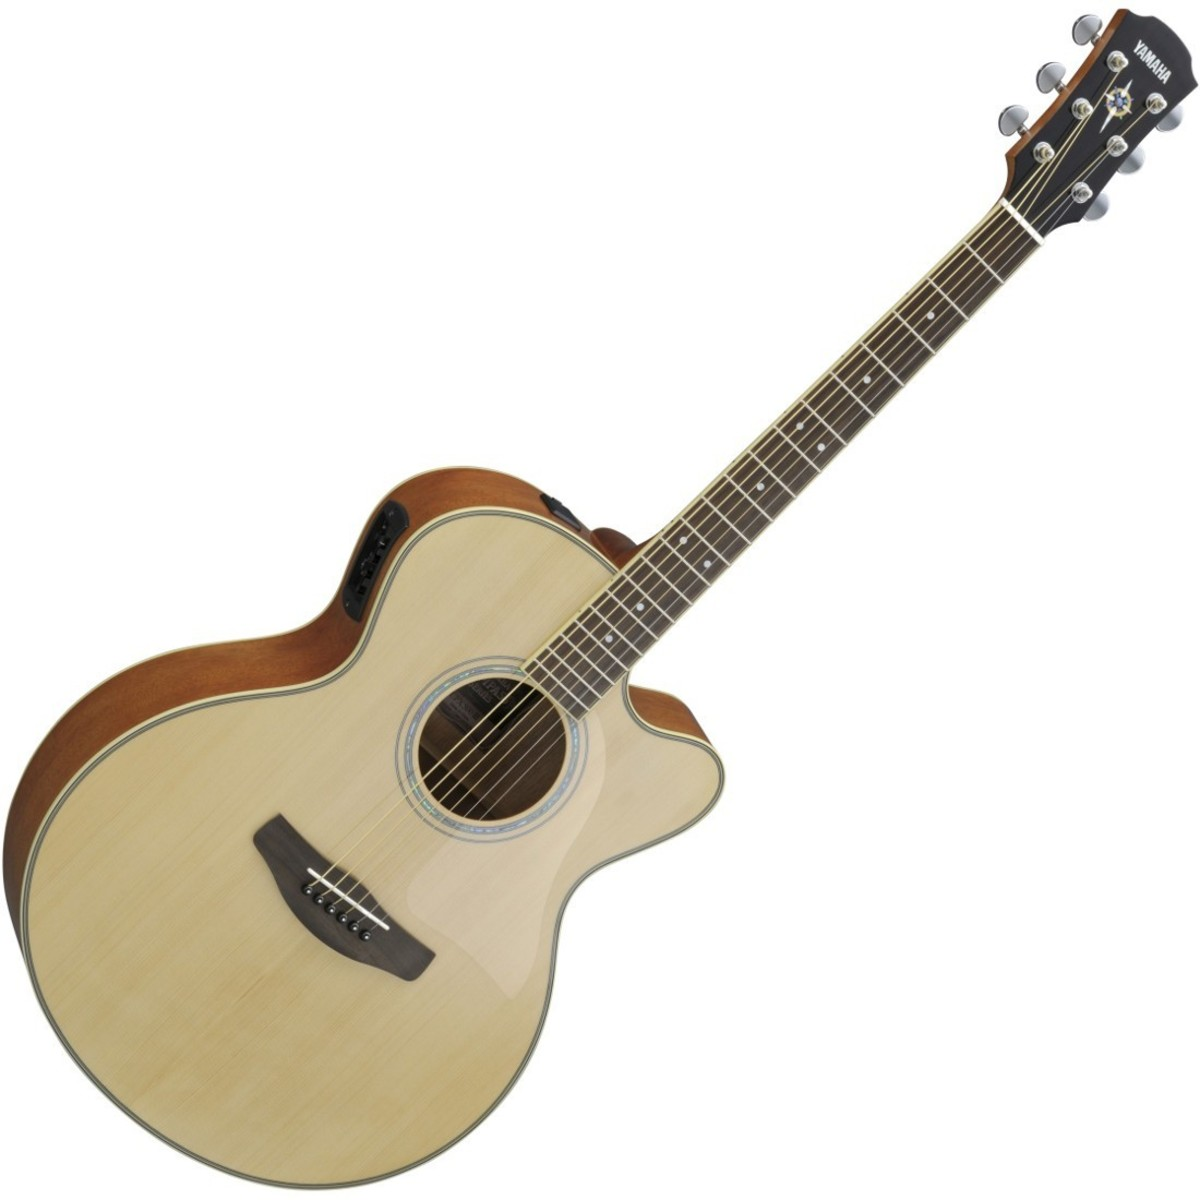 Yamaha cpx500 iii electro acoustic guitar natural at for Yamaha acoustic bass guitar